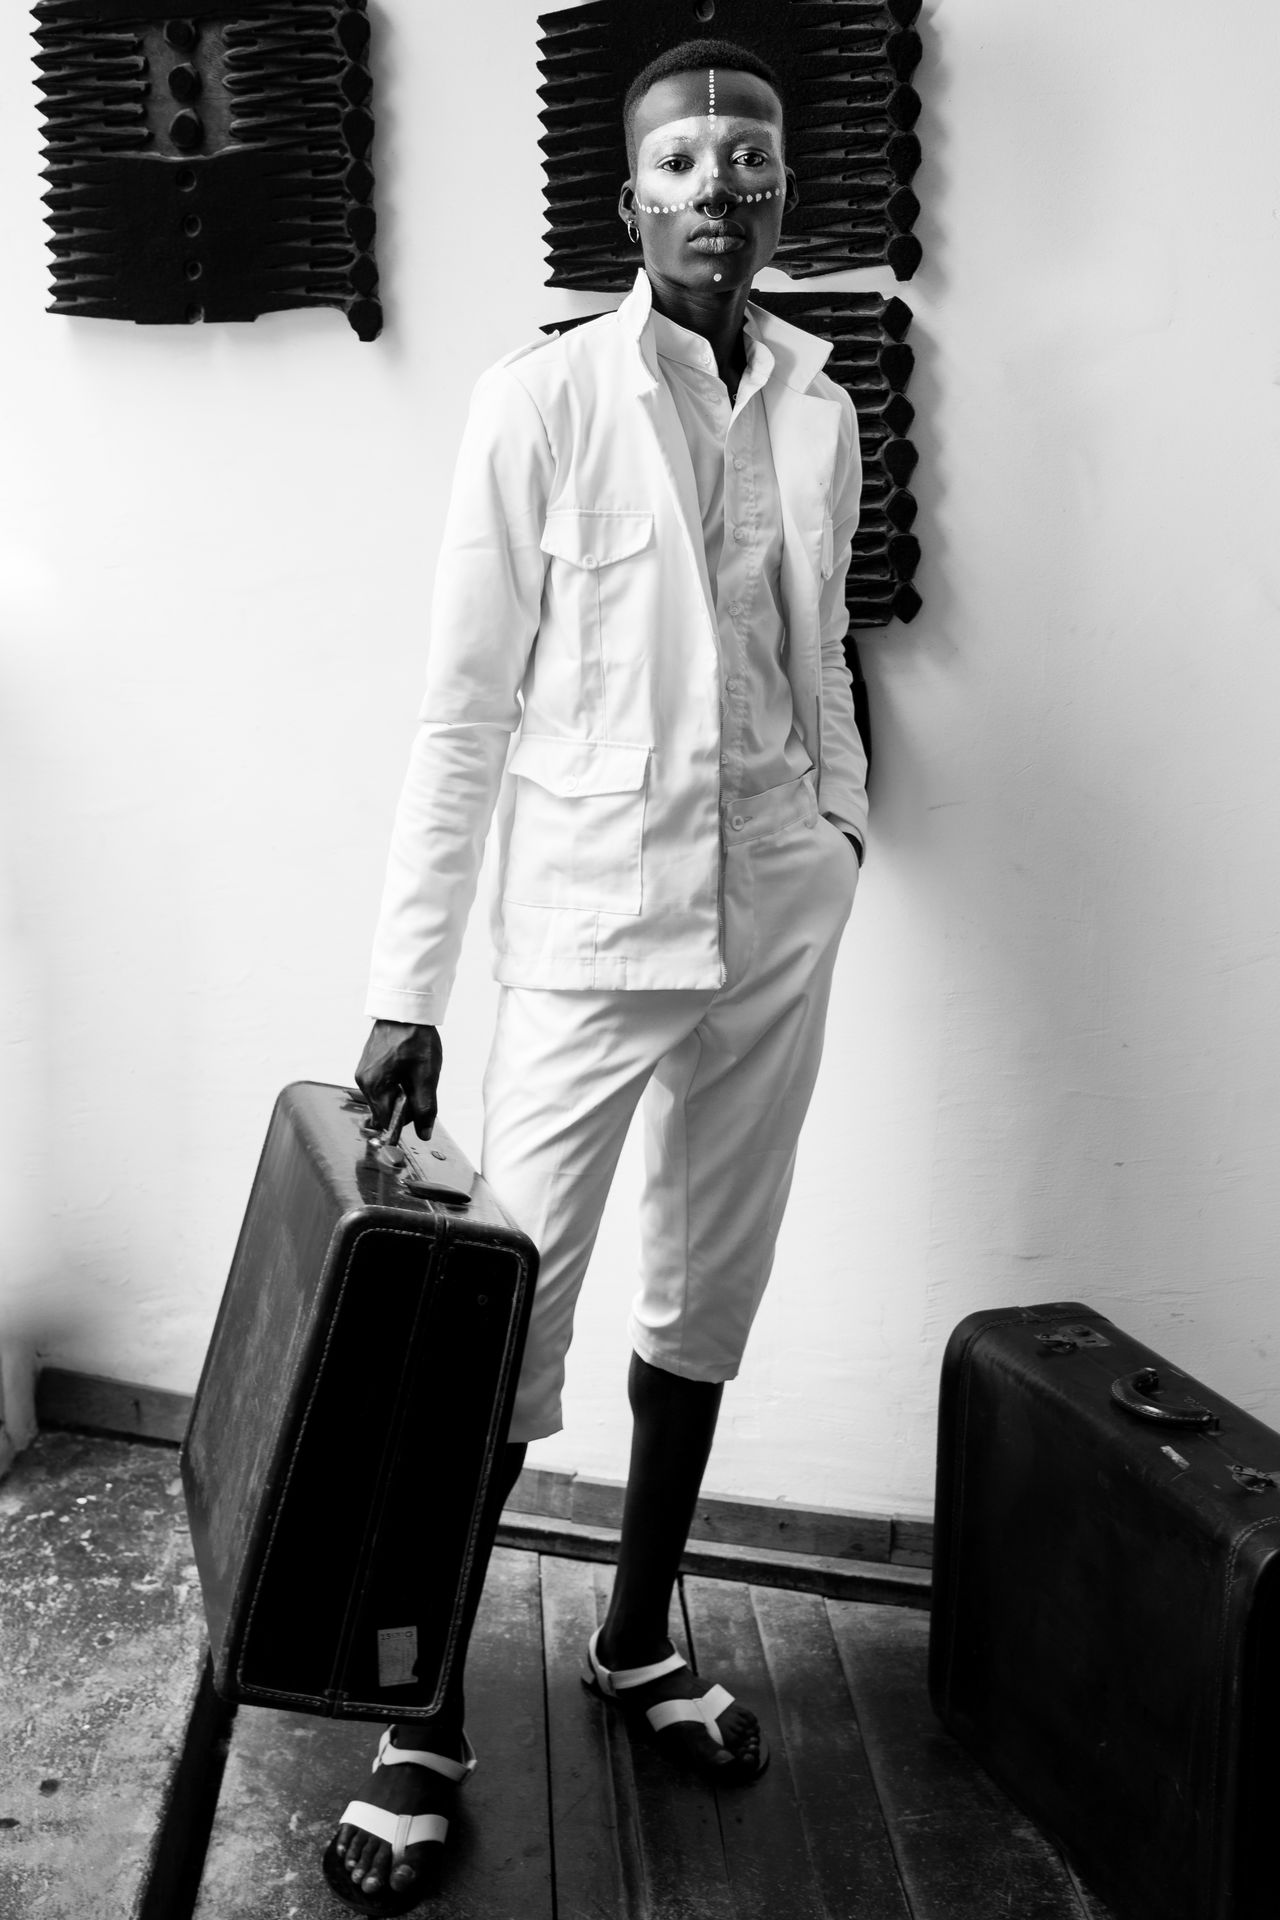 Africa African Beauty Blackandwhite Photography Casual Clothing Day Fashion Fashion Photography Front View Indoors  Lifestyles Looking At Camera Luggage One Person People Portrait Real People Standing Suitcase